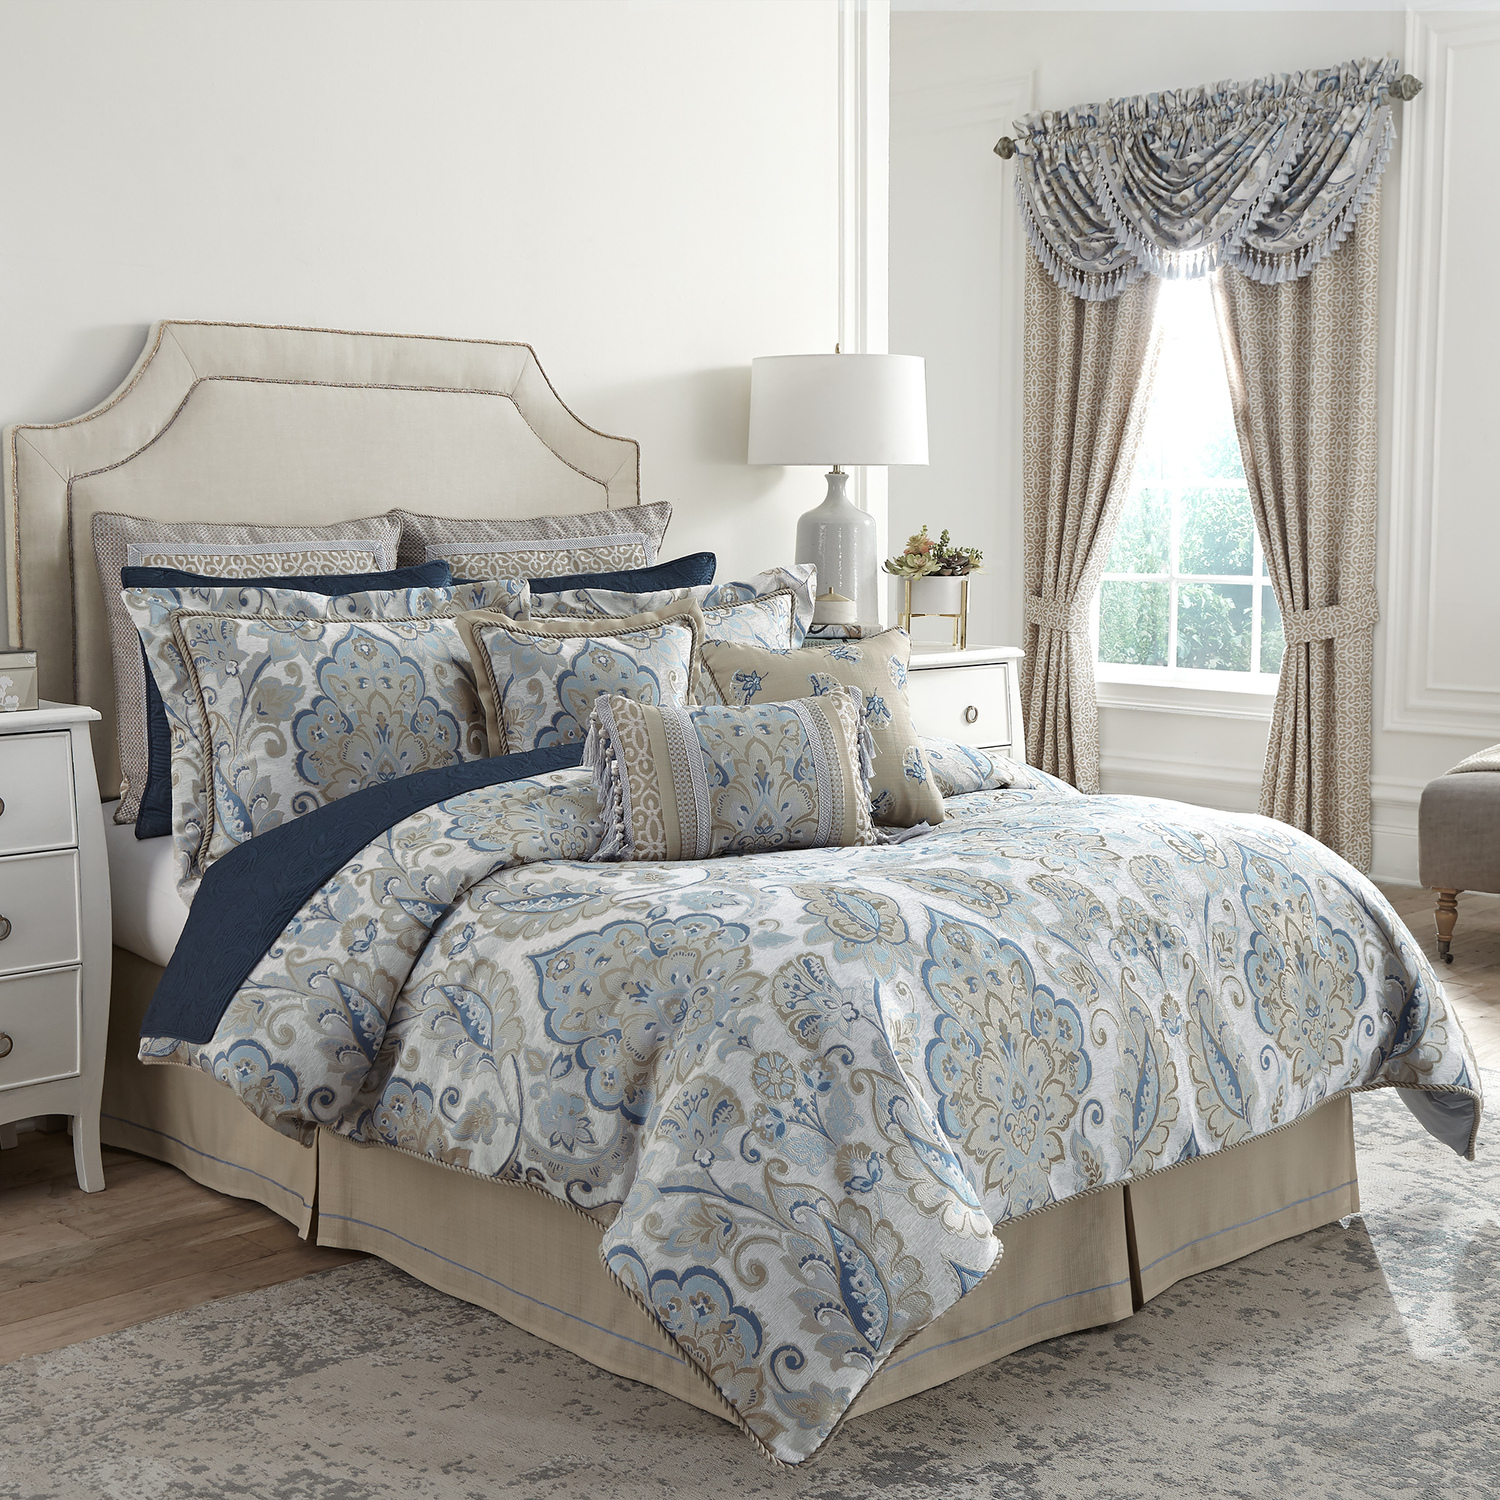 Emery by Croscill Home Fashions